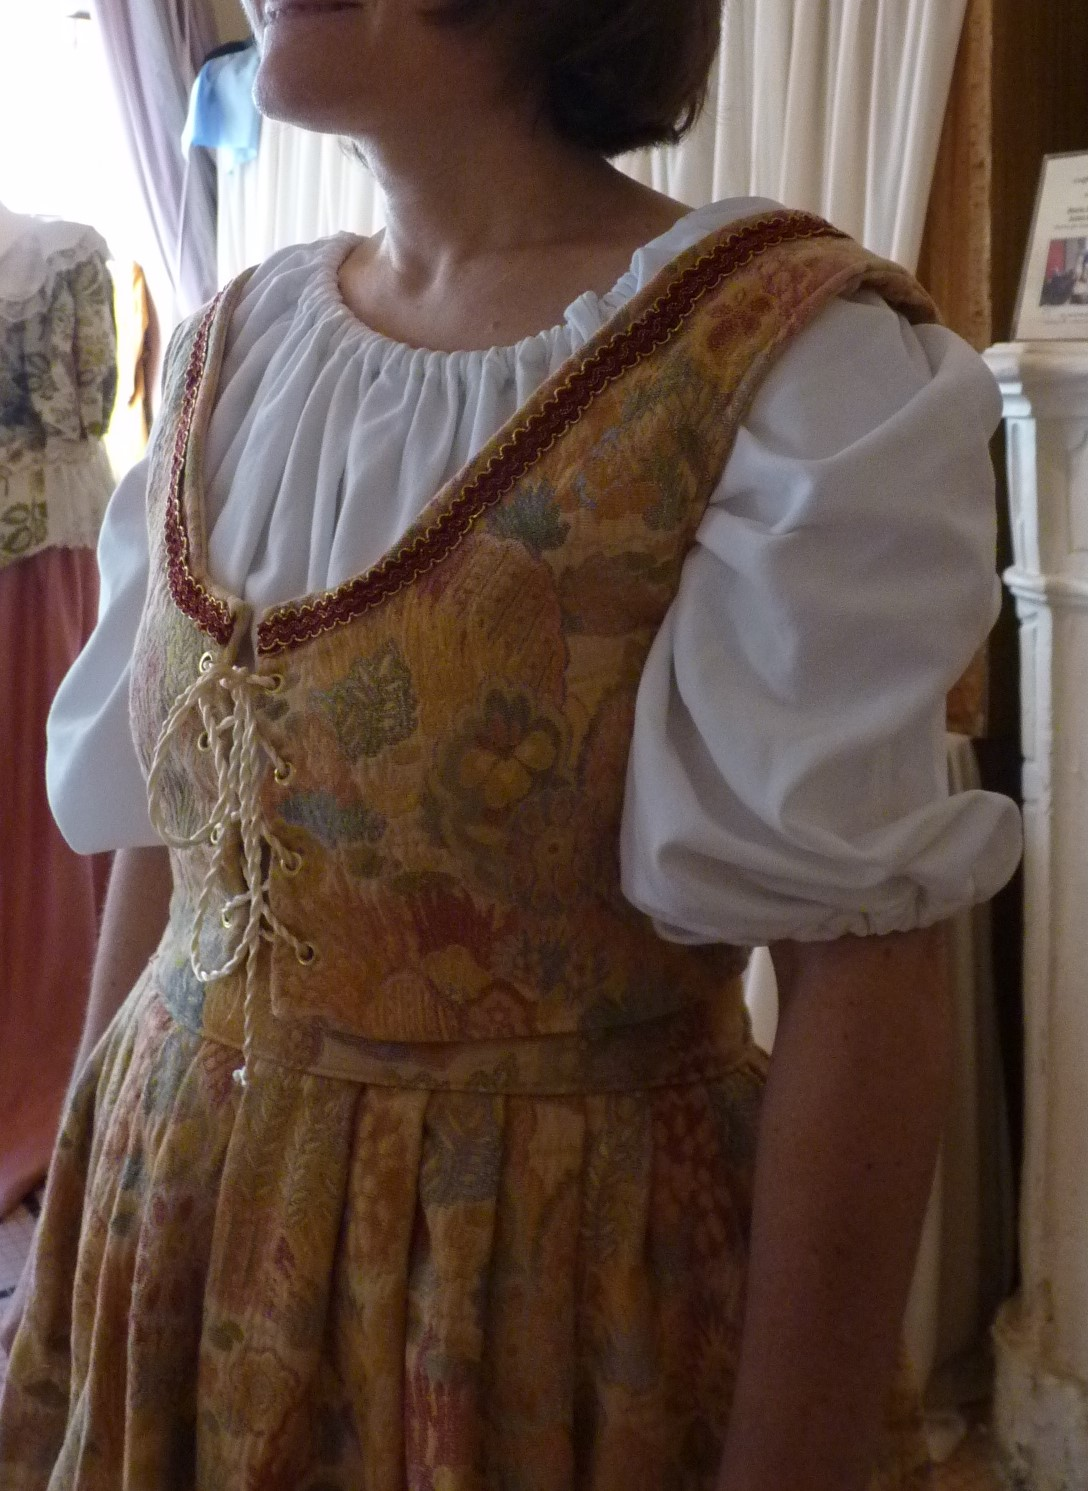 Detail of the Lady Honorime's costume